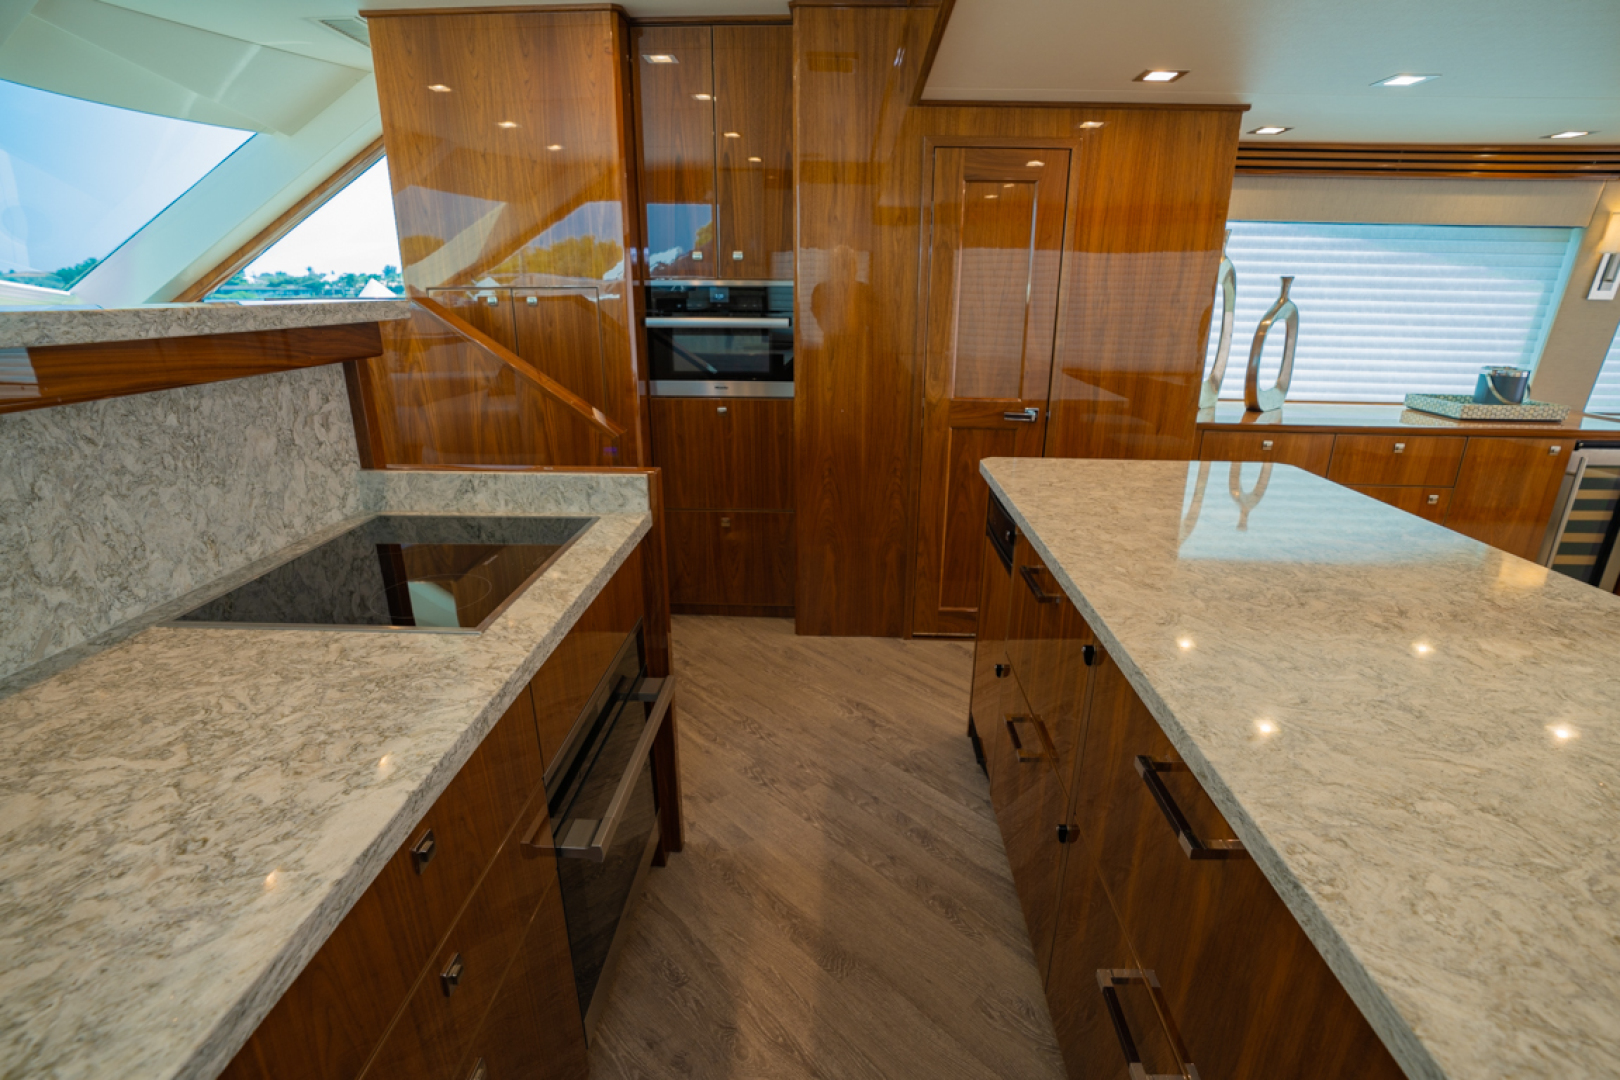 Viking-82 Cockpit MY 2019-Make It Happen Sanibel -Florida-United States-Viking 82CPMY Make It Happen Galley-1378536 | Thumbnail